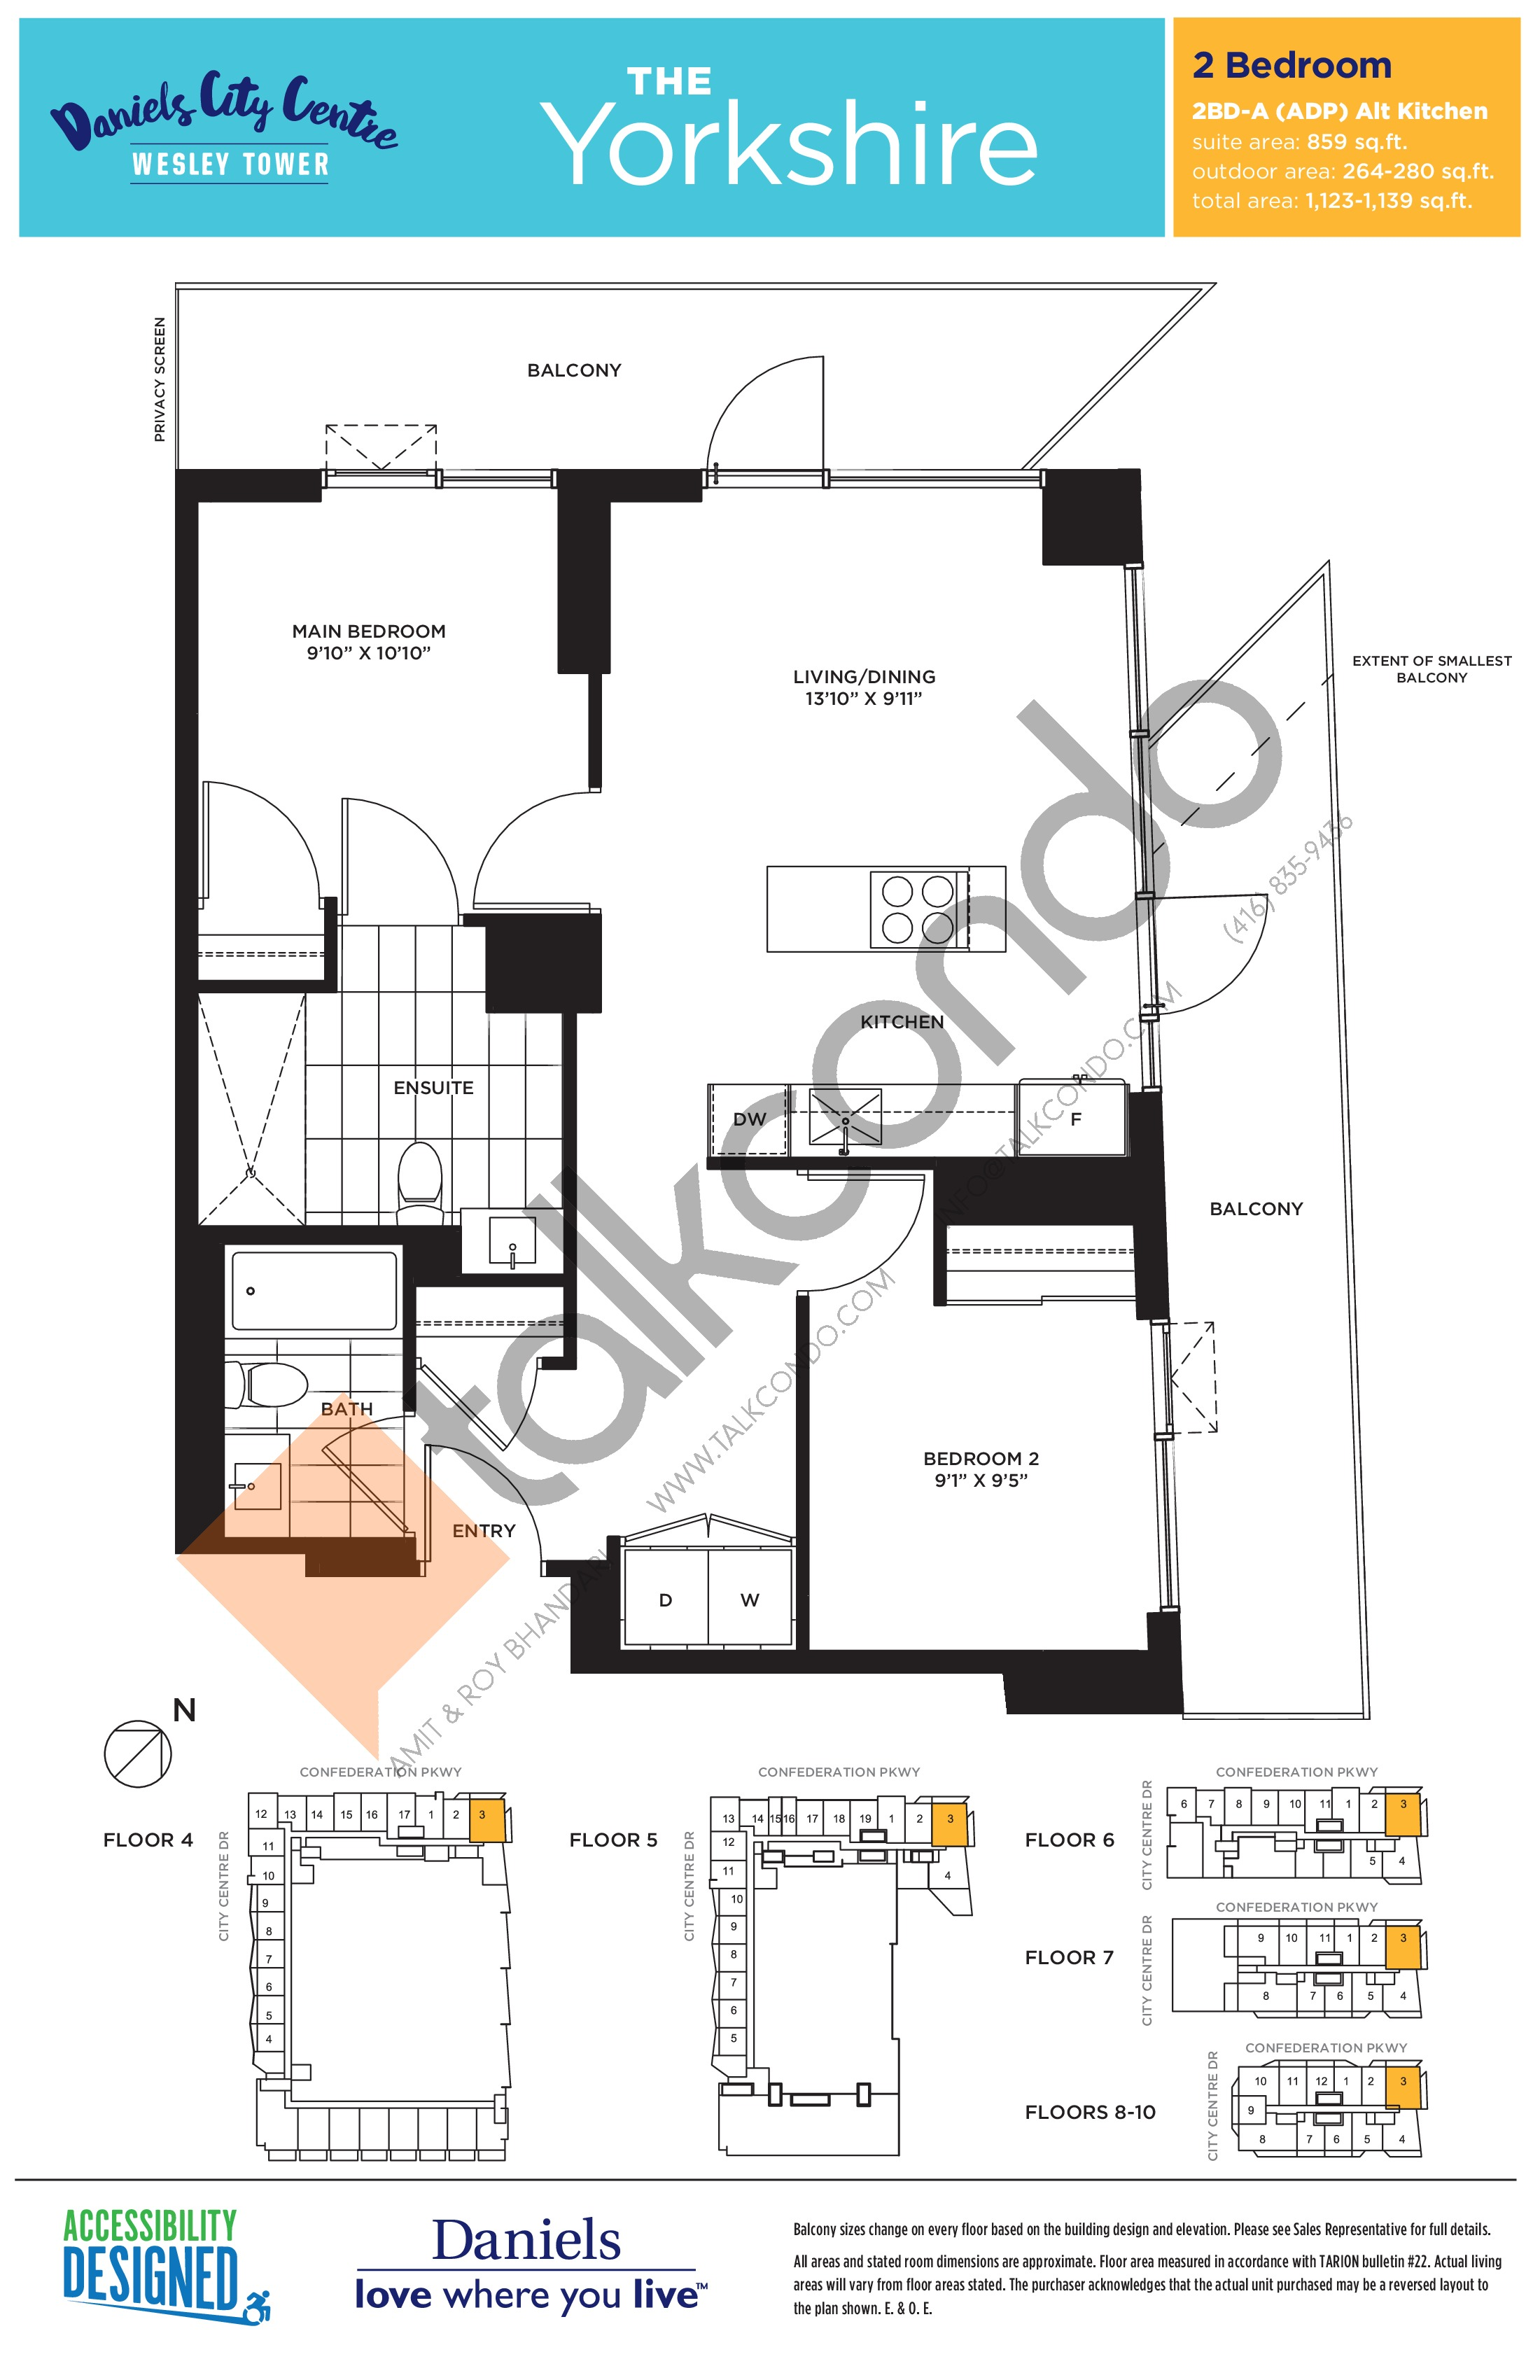 The Yorkshire Floor Plan at The Wesley Tower at Daniels City Centre Condos - 859 sq.ft